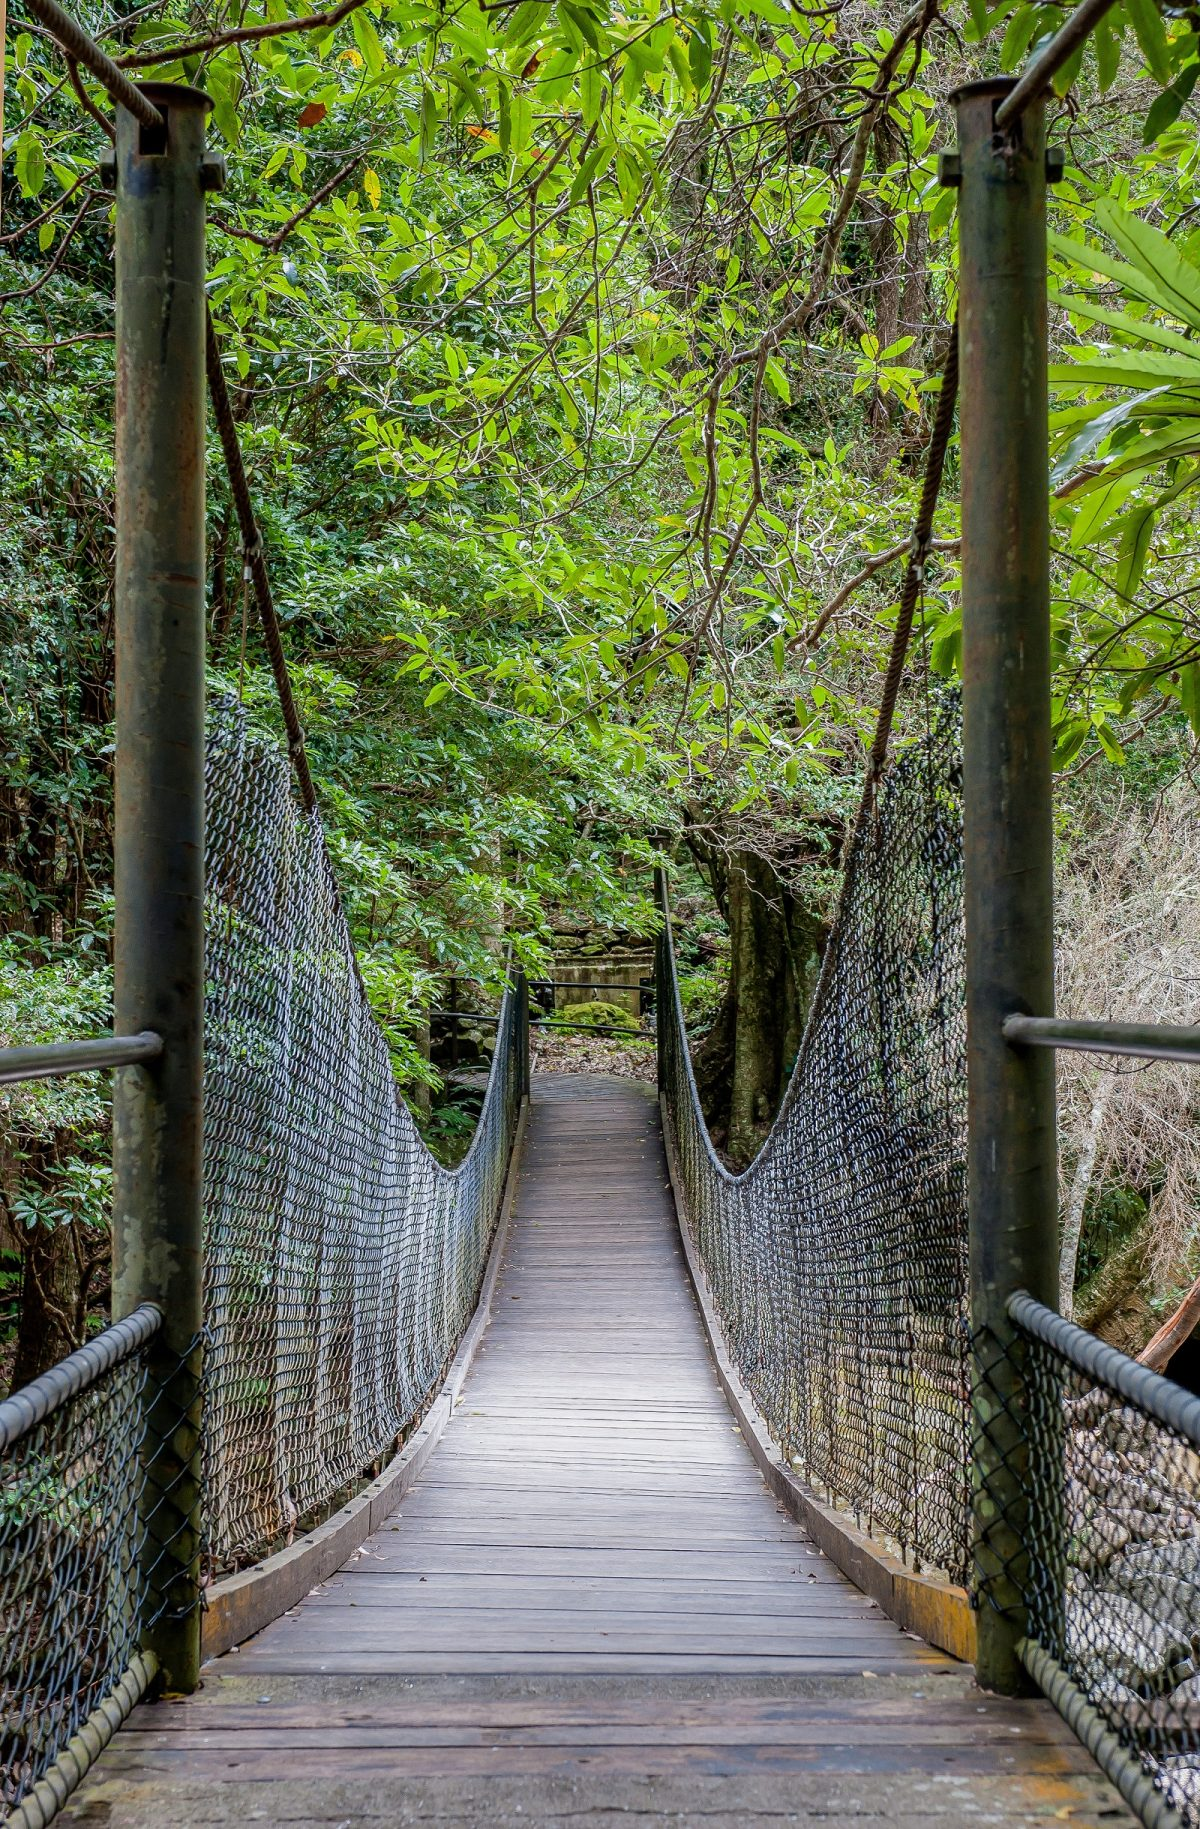 Suspension bridge of the Rainforest loop walk in Budderoo National Park. Photo: Michael Van Ewijk/OEH